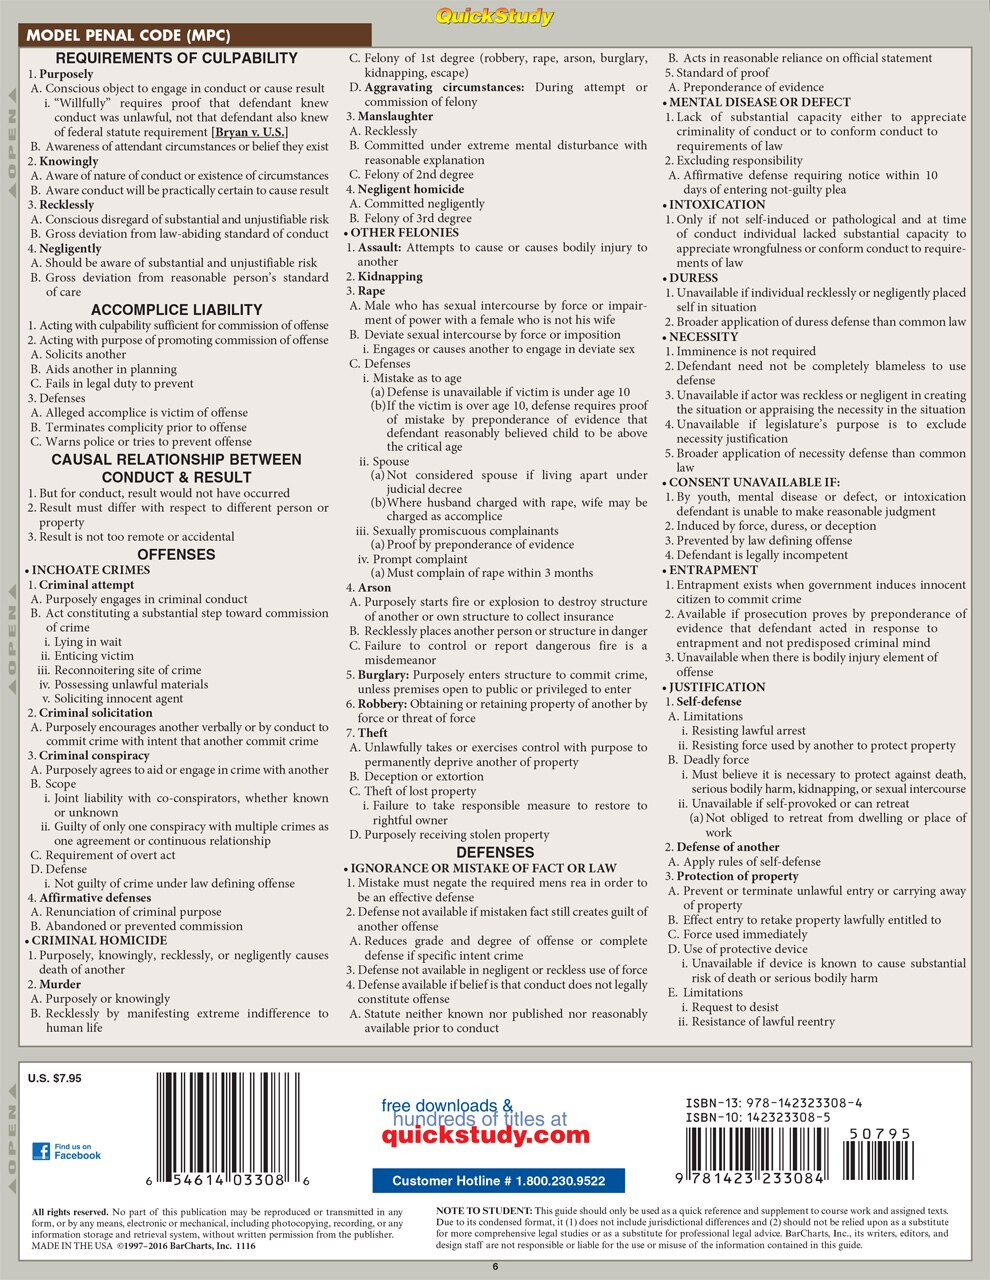 QuickStudy Criminal Law Laminated Reference Guide BarCharts Publishing Legal Reference Quick Study Back Image